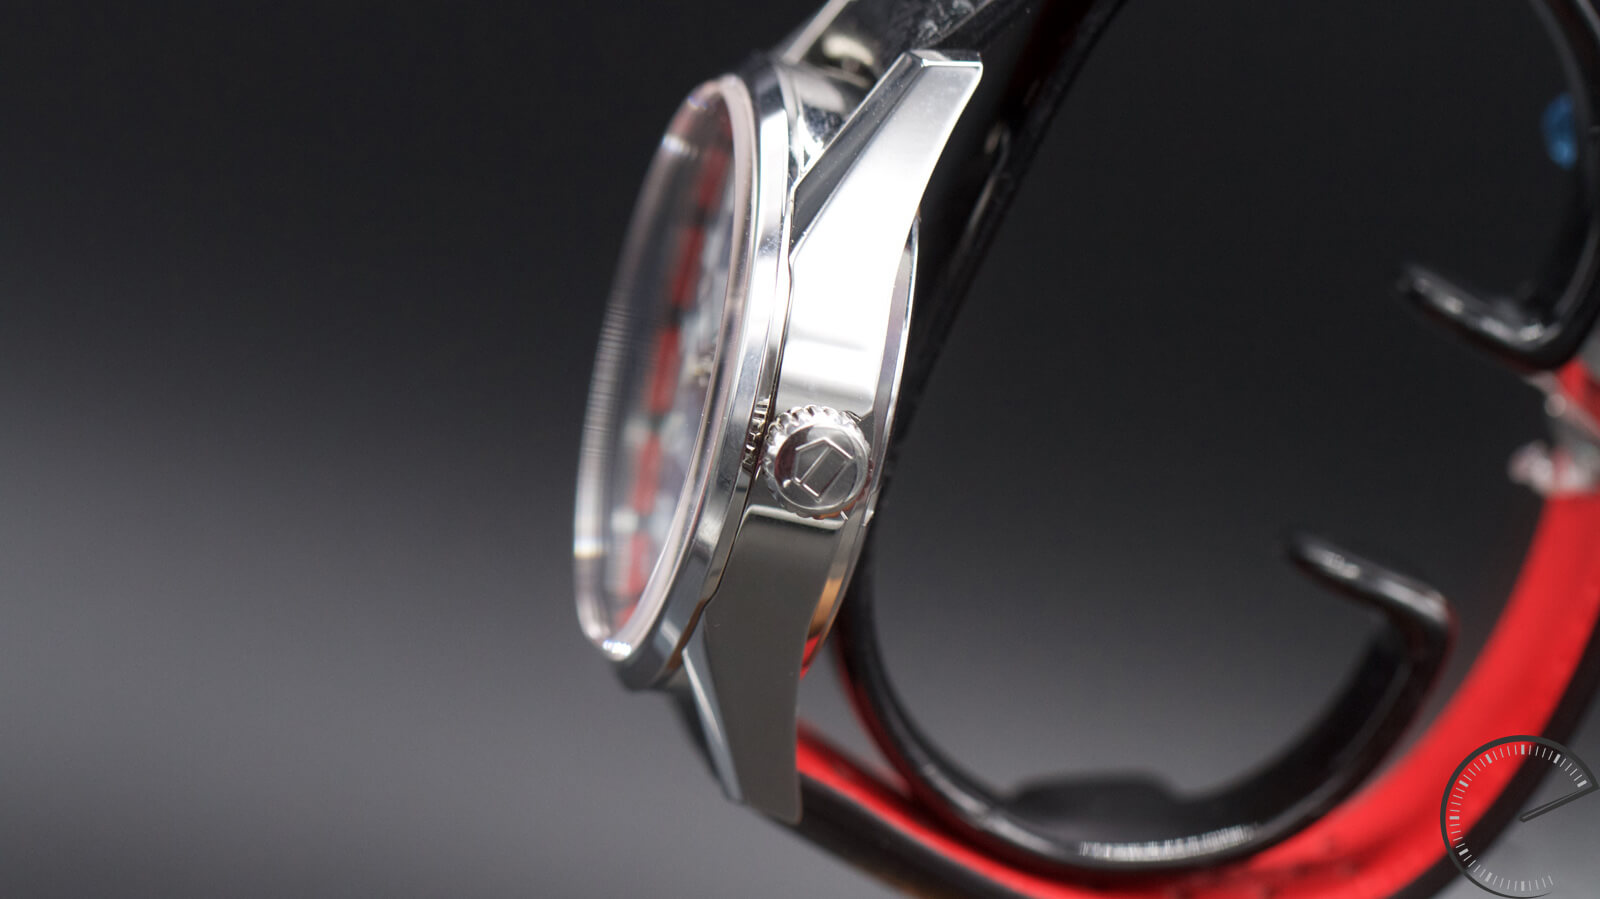 TAG Heuer Carrera Calibre Muhammad Ali Limited Edition featuring rotating inner bezel for timing boxing bouts